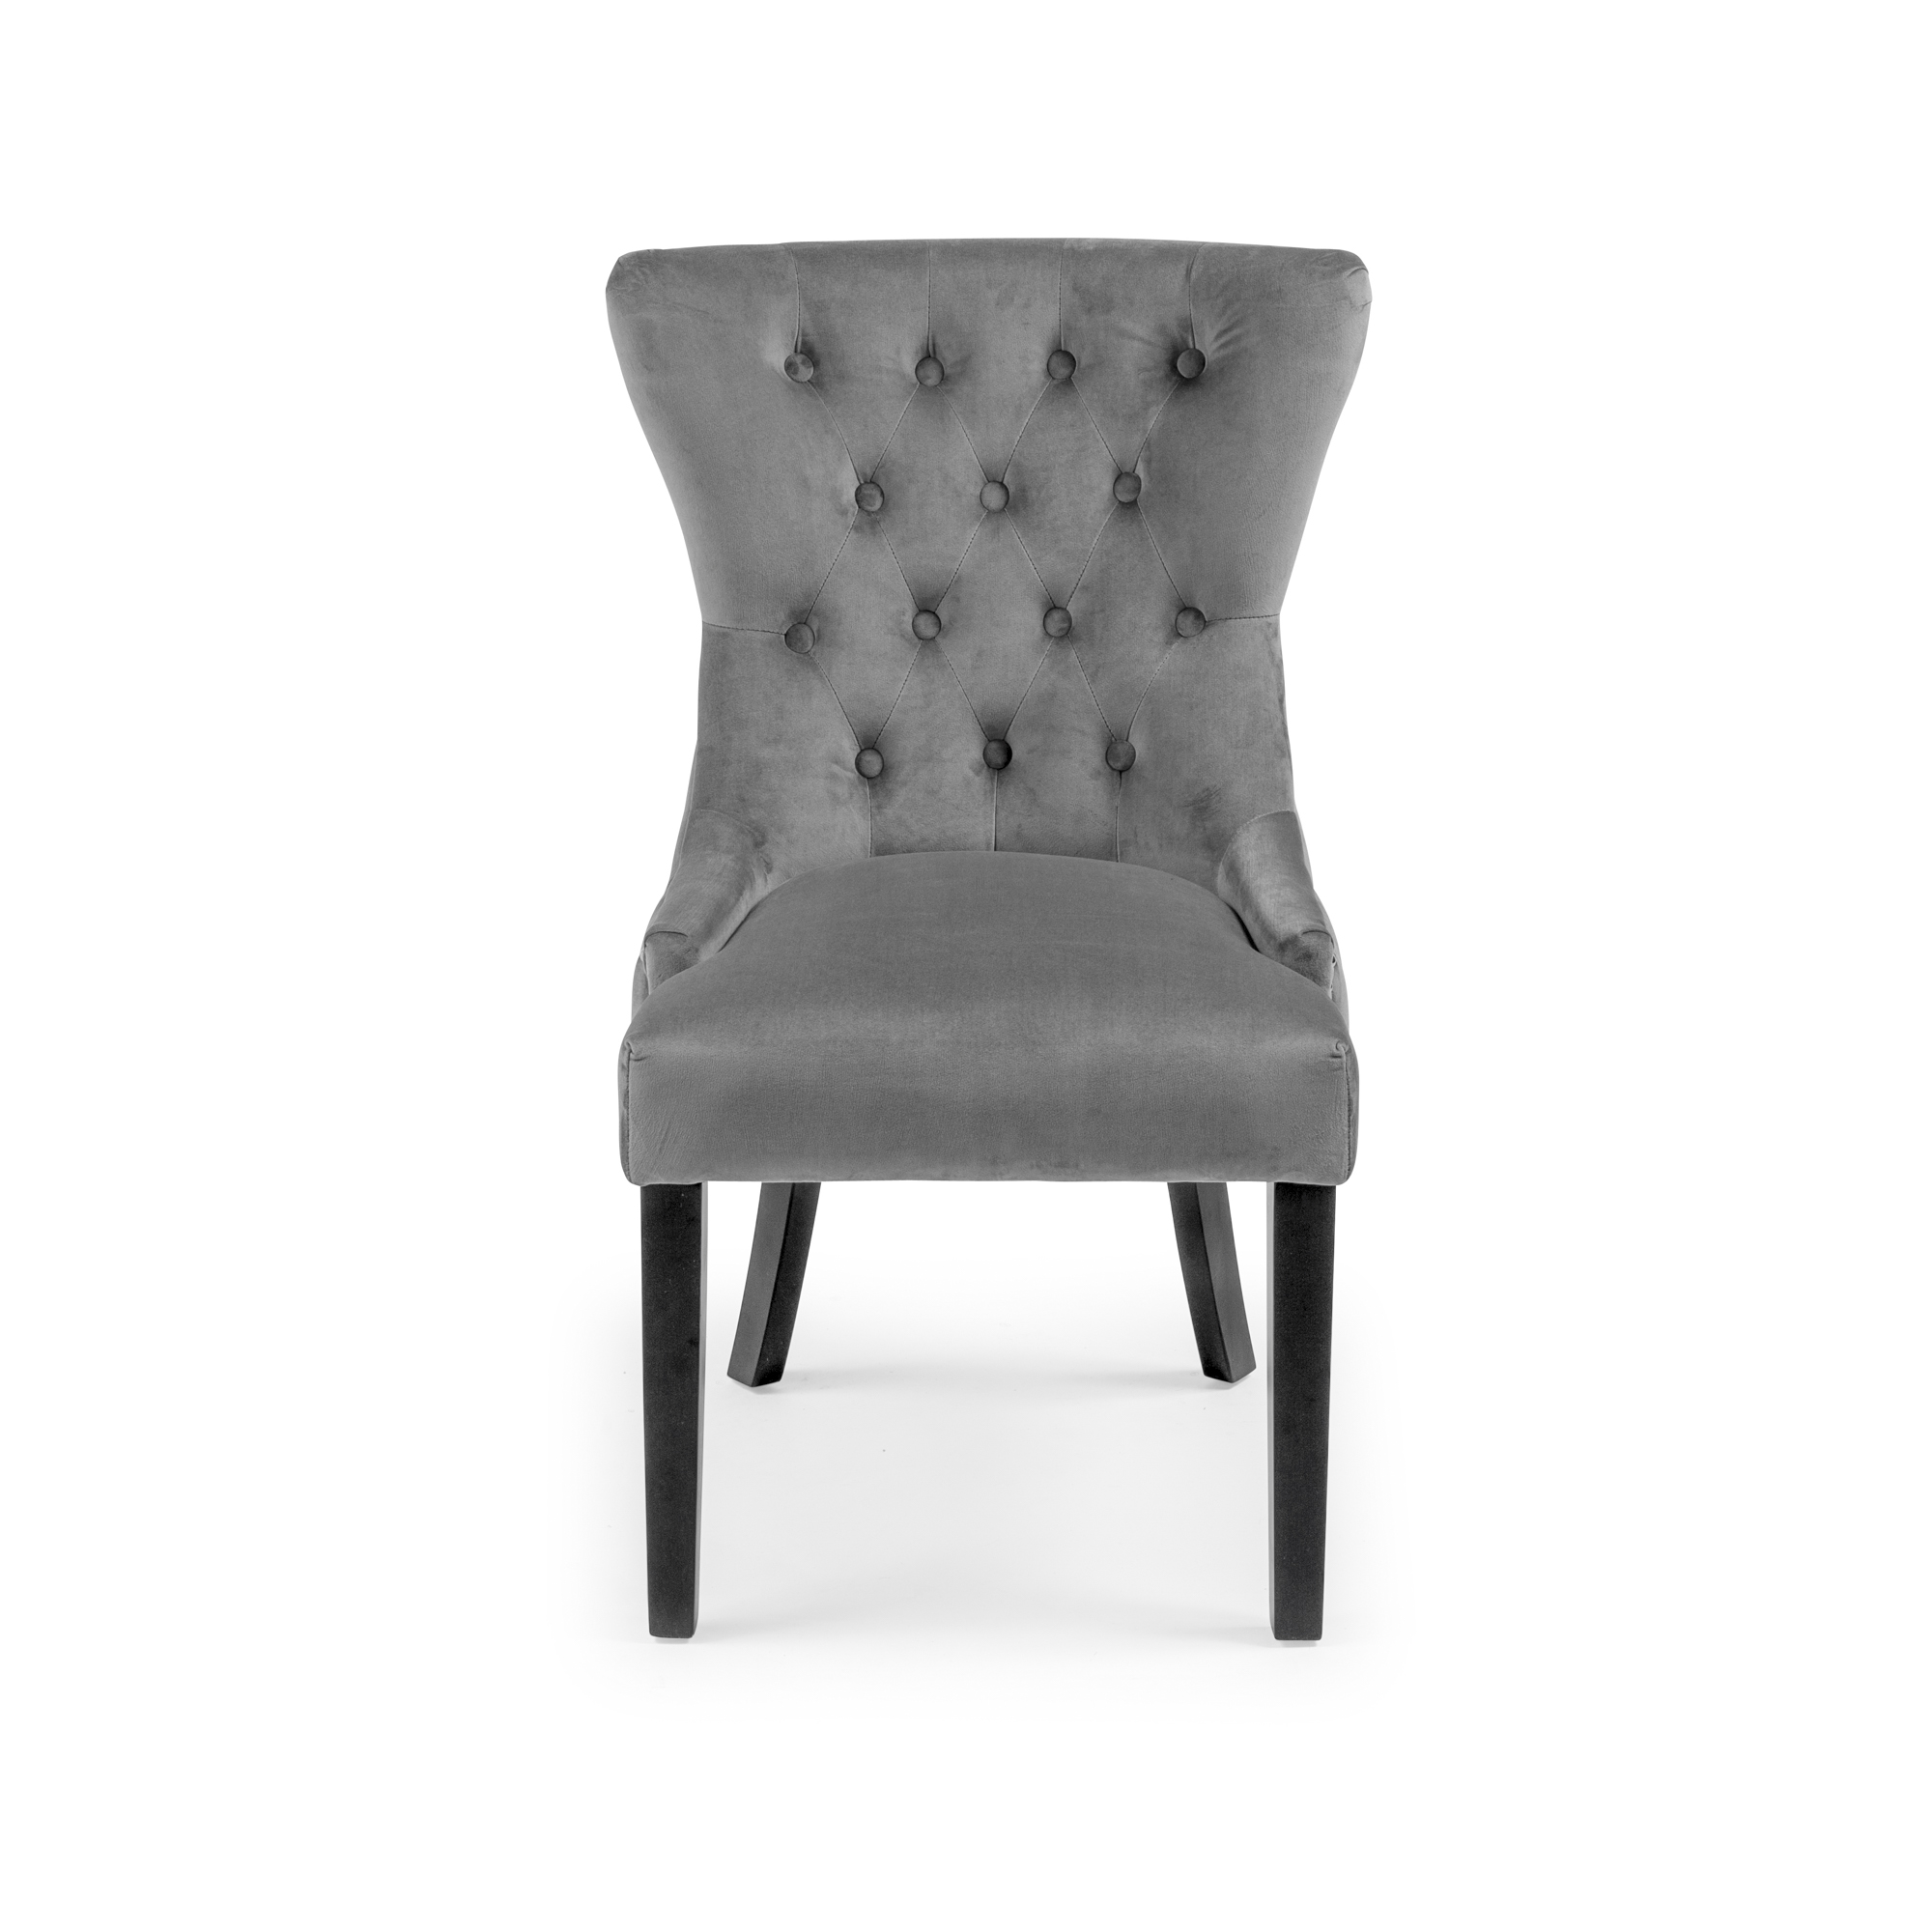 Knightsbridge Buttoned Grey Brushed Velvet Dining Chair with Black Legs